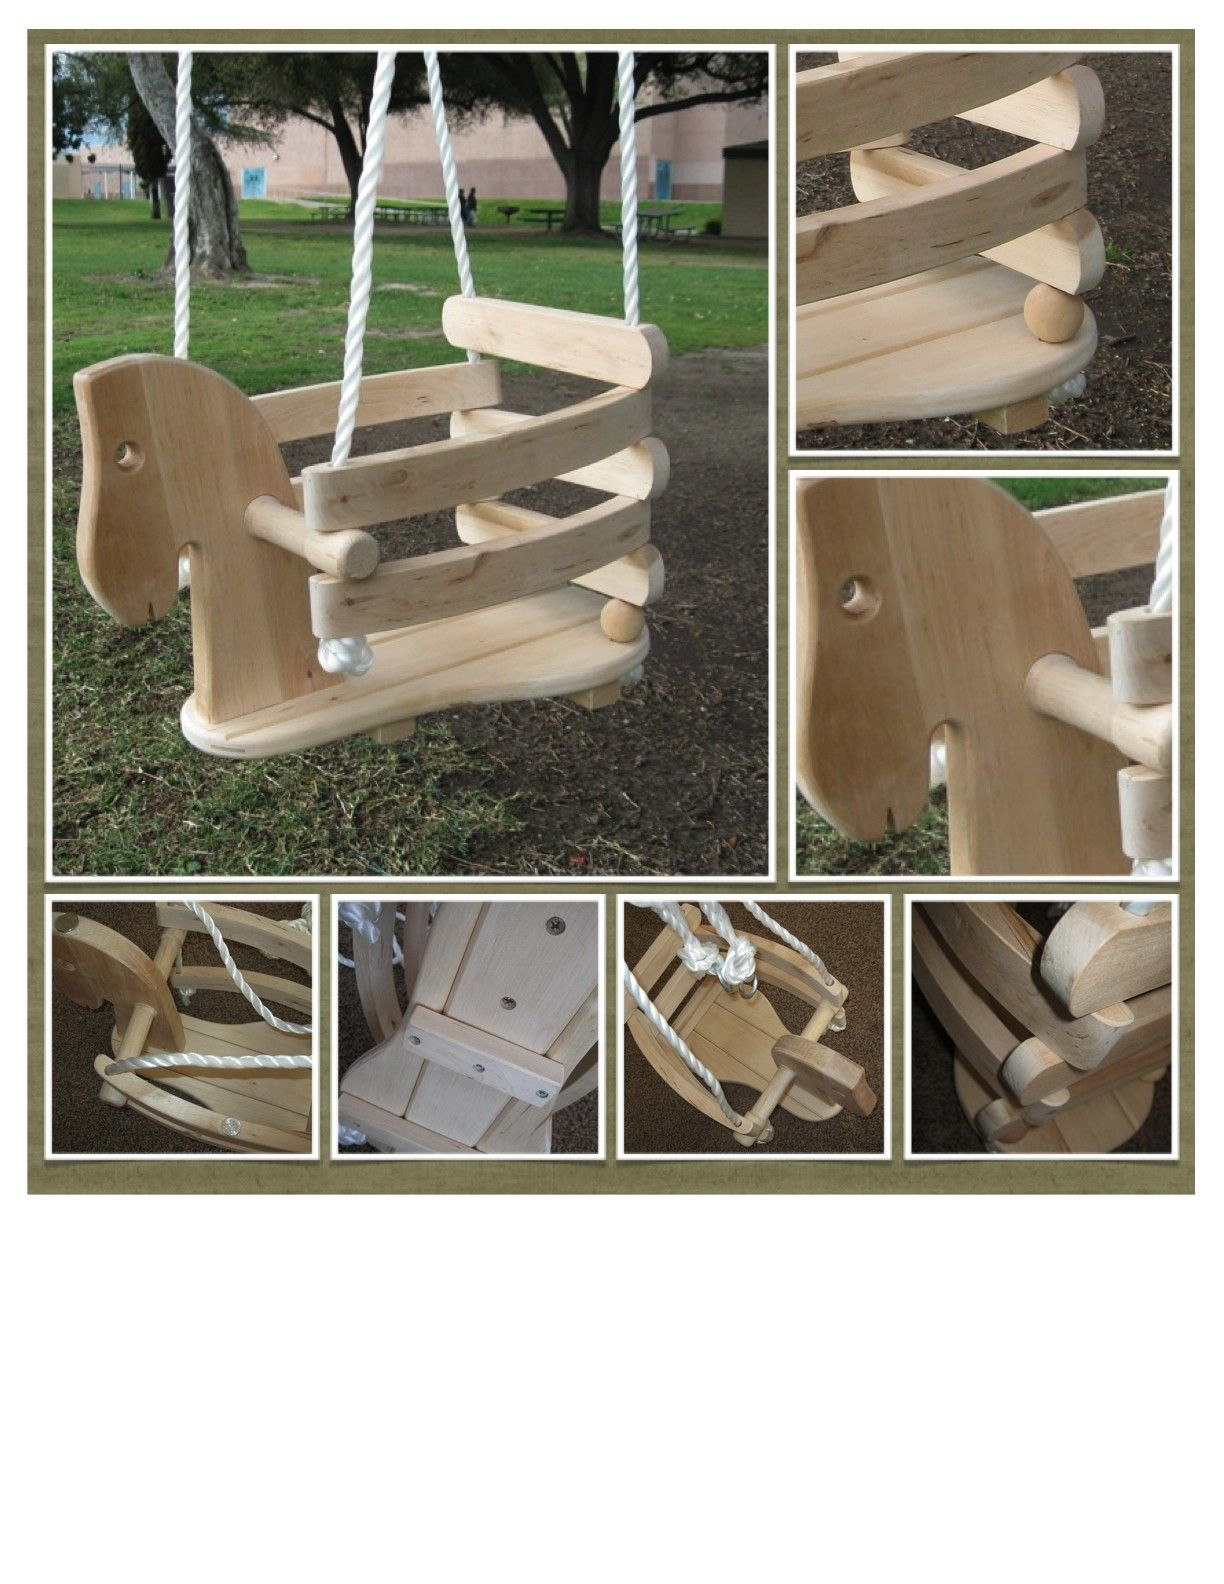 Wooden horse swing free patterns - Child Wooden Horse Swing